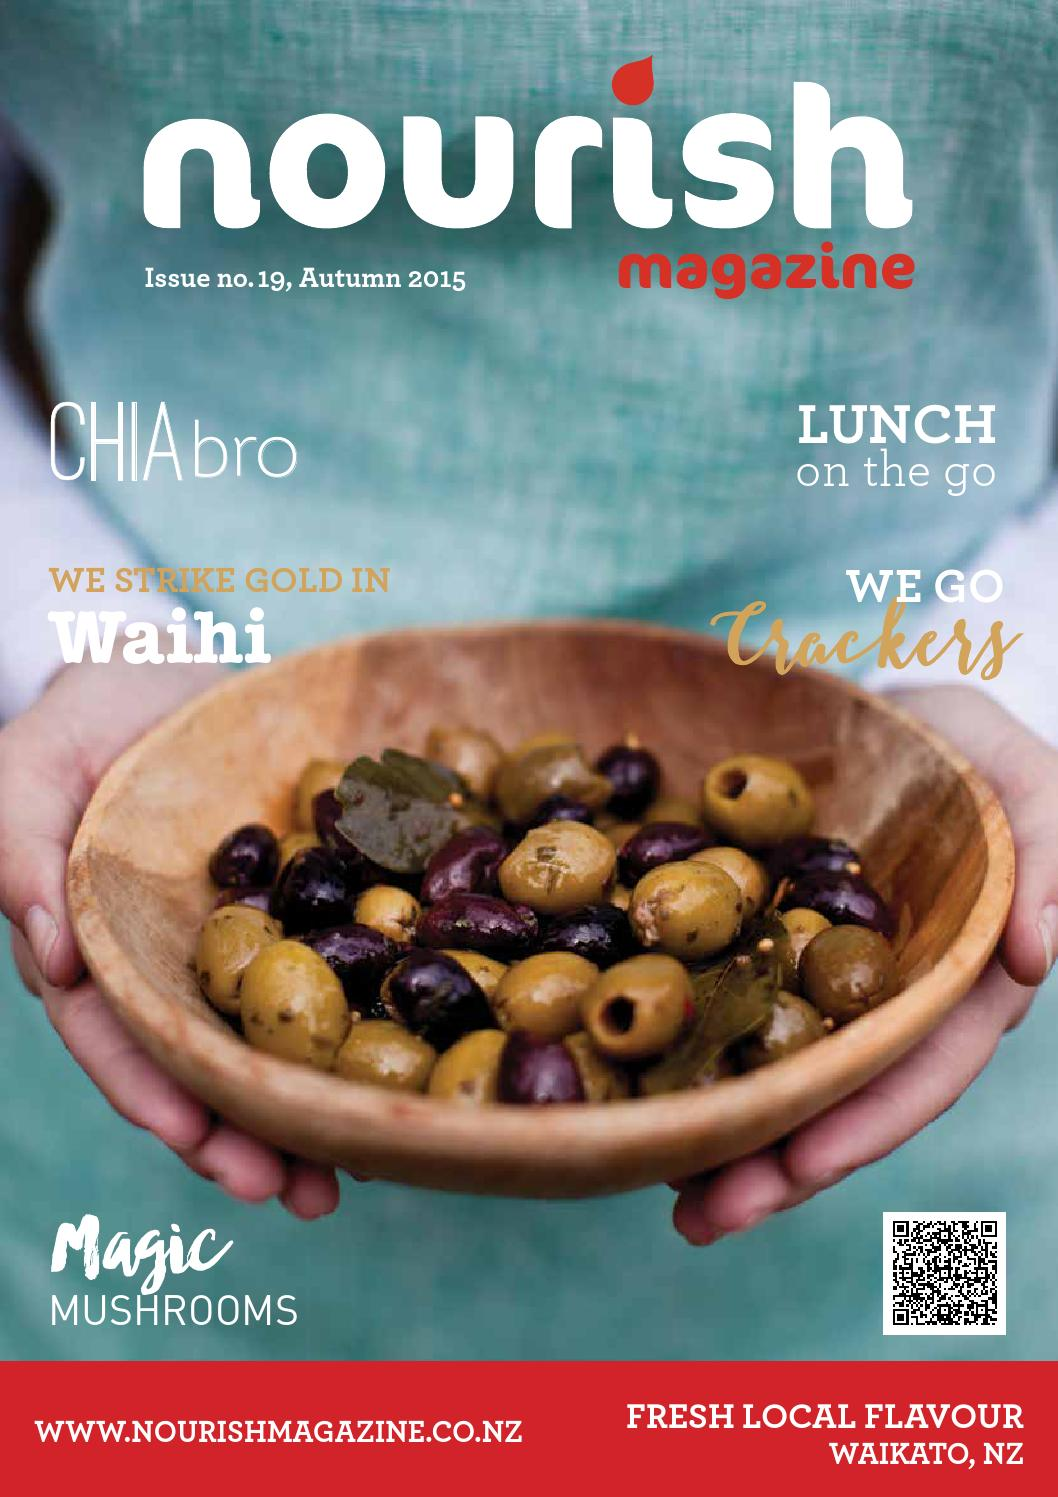 Nourish Magazine Waikato Autumn 2015 by Nourish Magazine - issuu